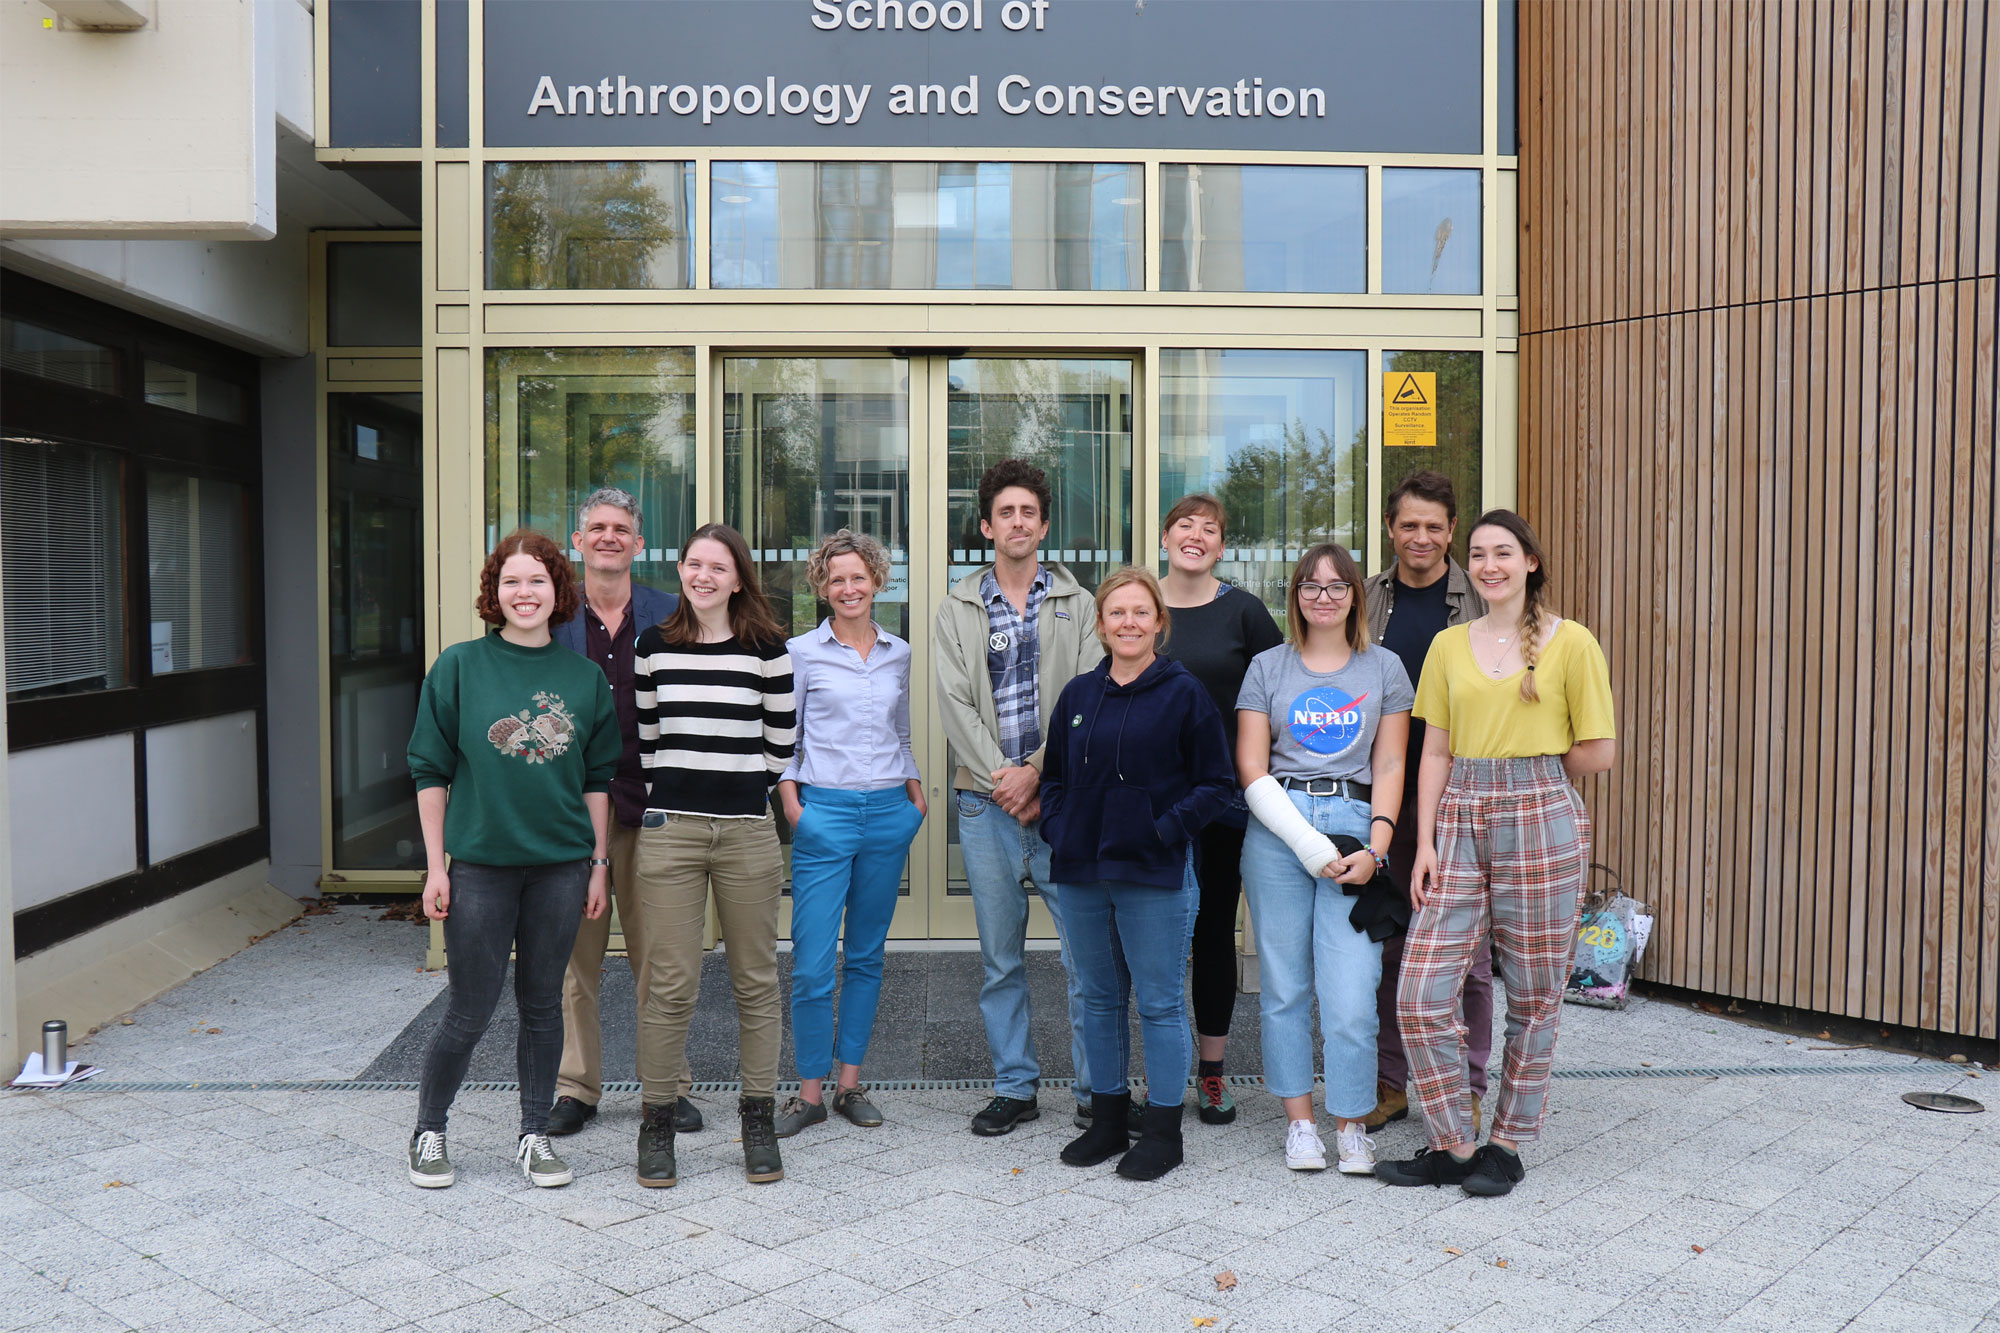 Members of the Sustainability Working Group outside the School of Anthropology and Conservation